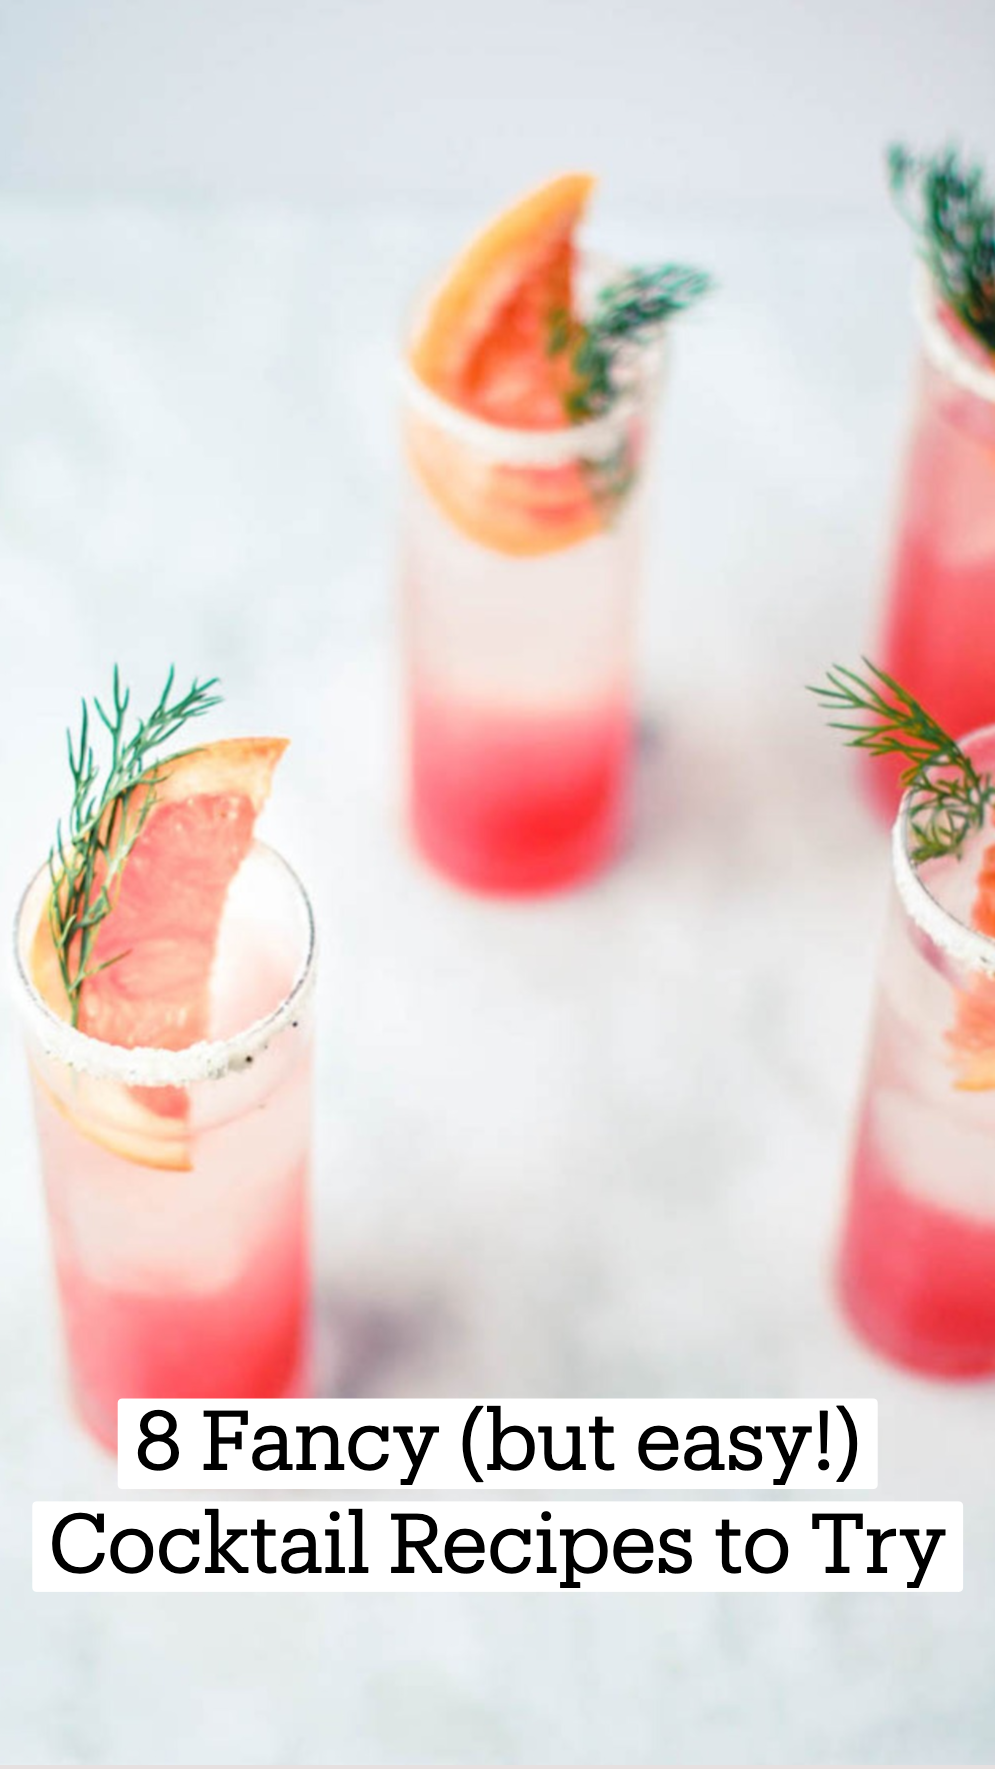 8 Fancy (but easy!) Cocktail Recipes to Try